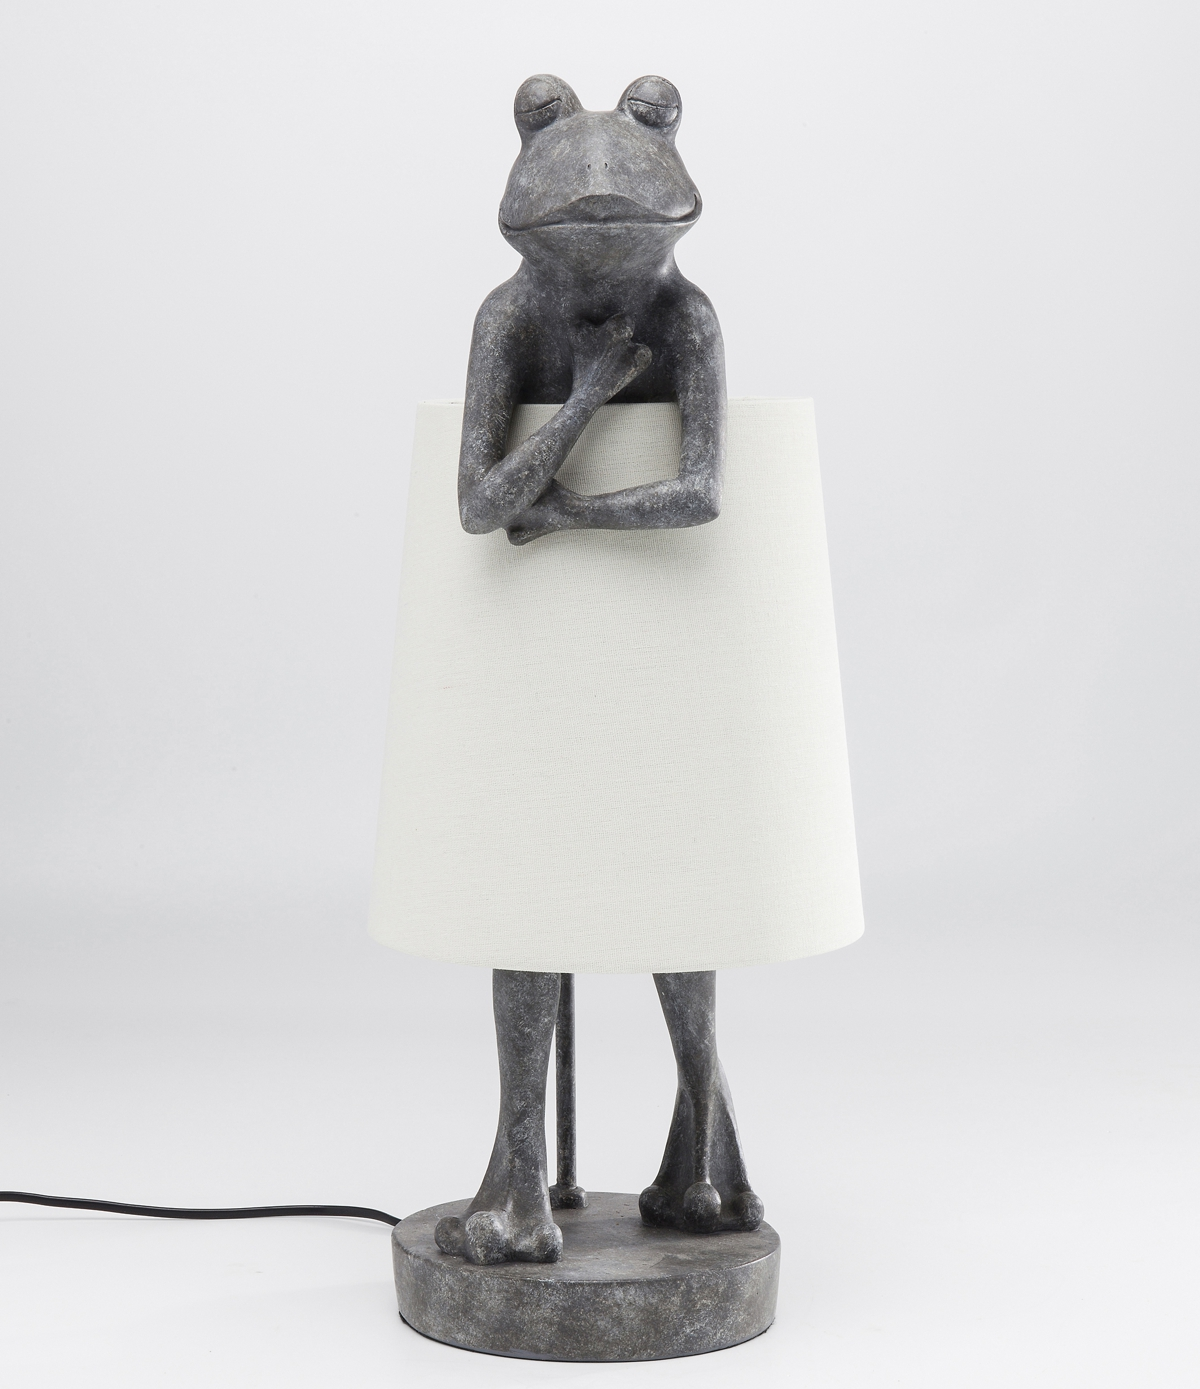 Frog Table Lamp With White Shade H58 x W23 x D29 cm